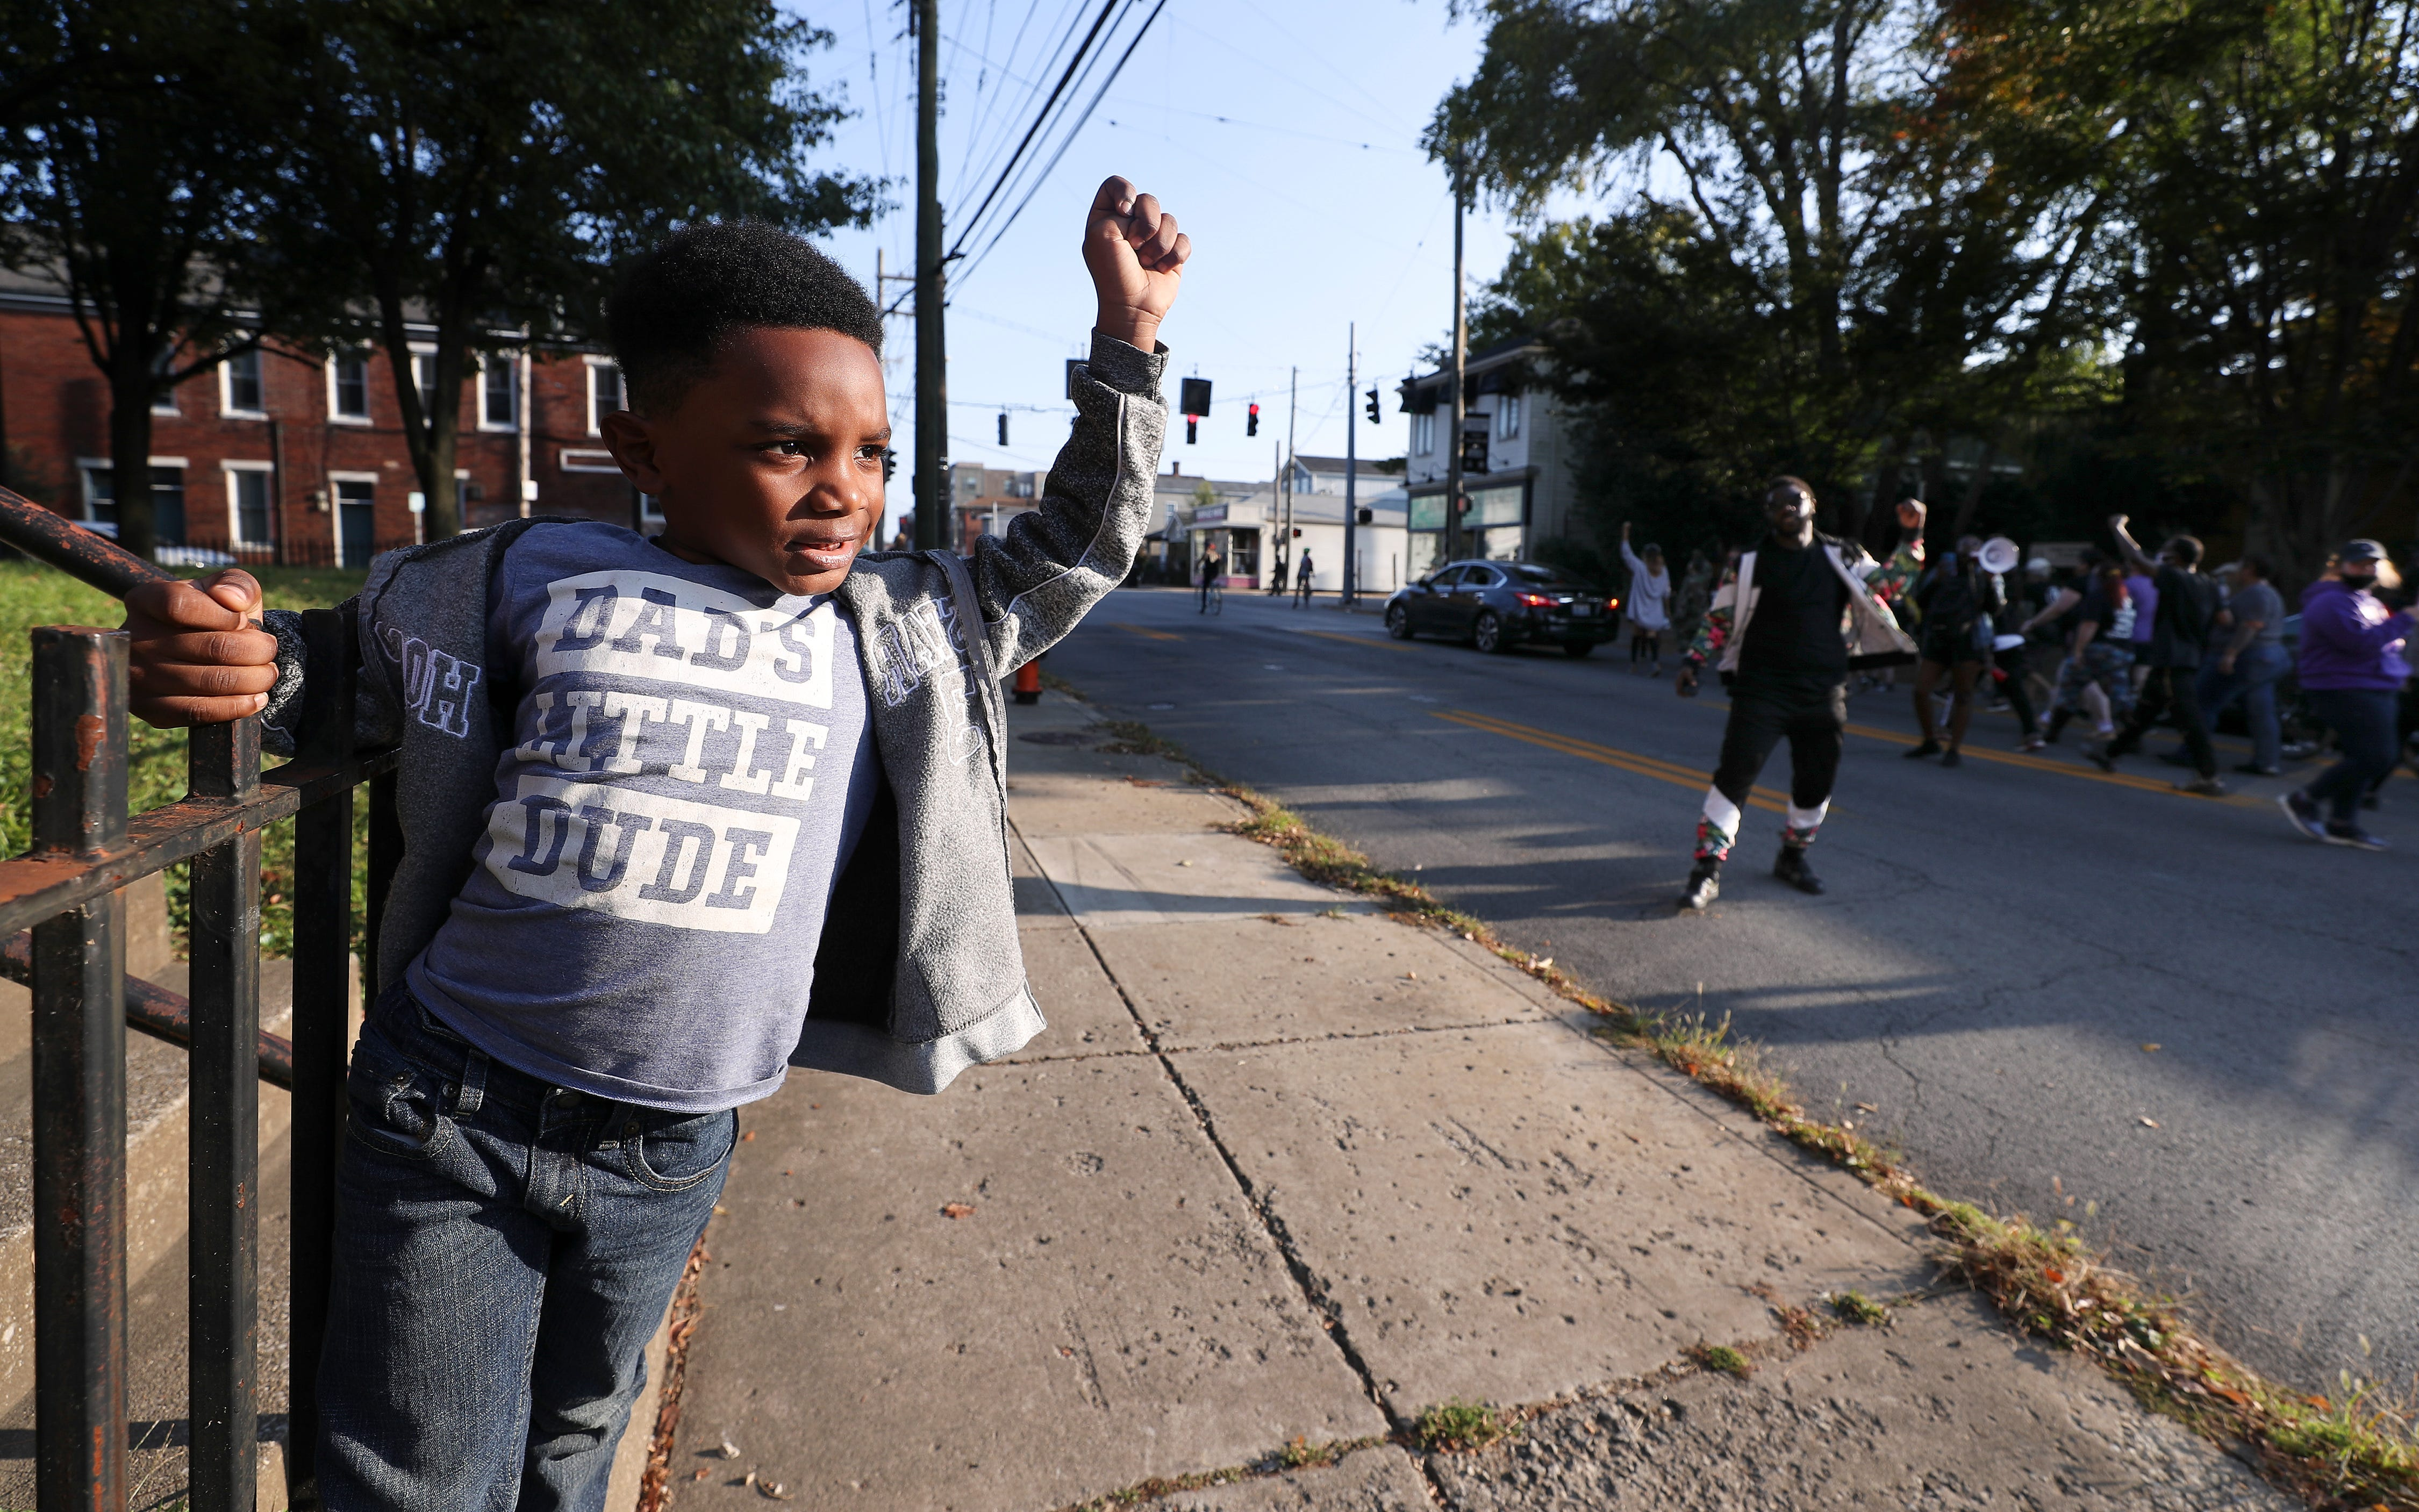 Charles Buntyn, 6, raises a fist in the air in solidarity with passing protesters as they marched down Baxter Ave. during a demonstration to honor Breonna Taylor in Louisville, Ky. on Oct. 6, 2020.